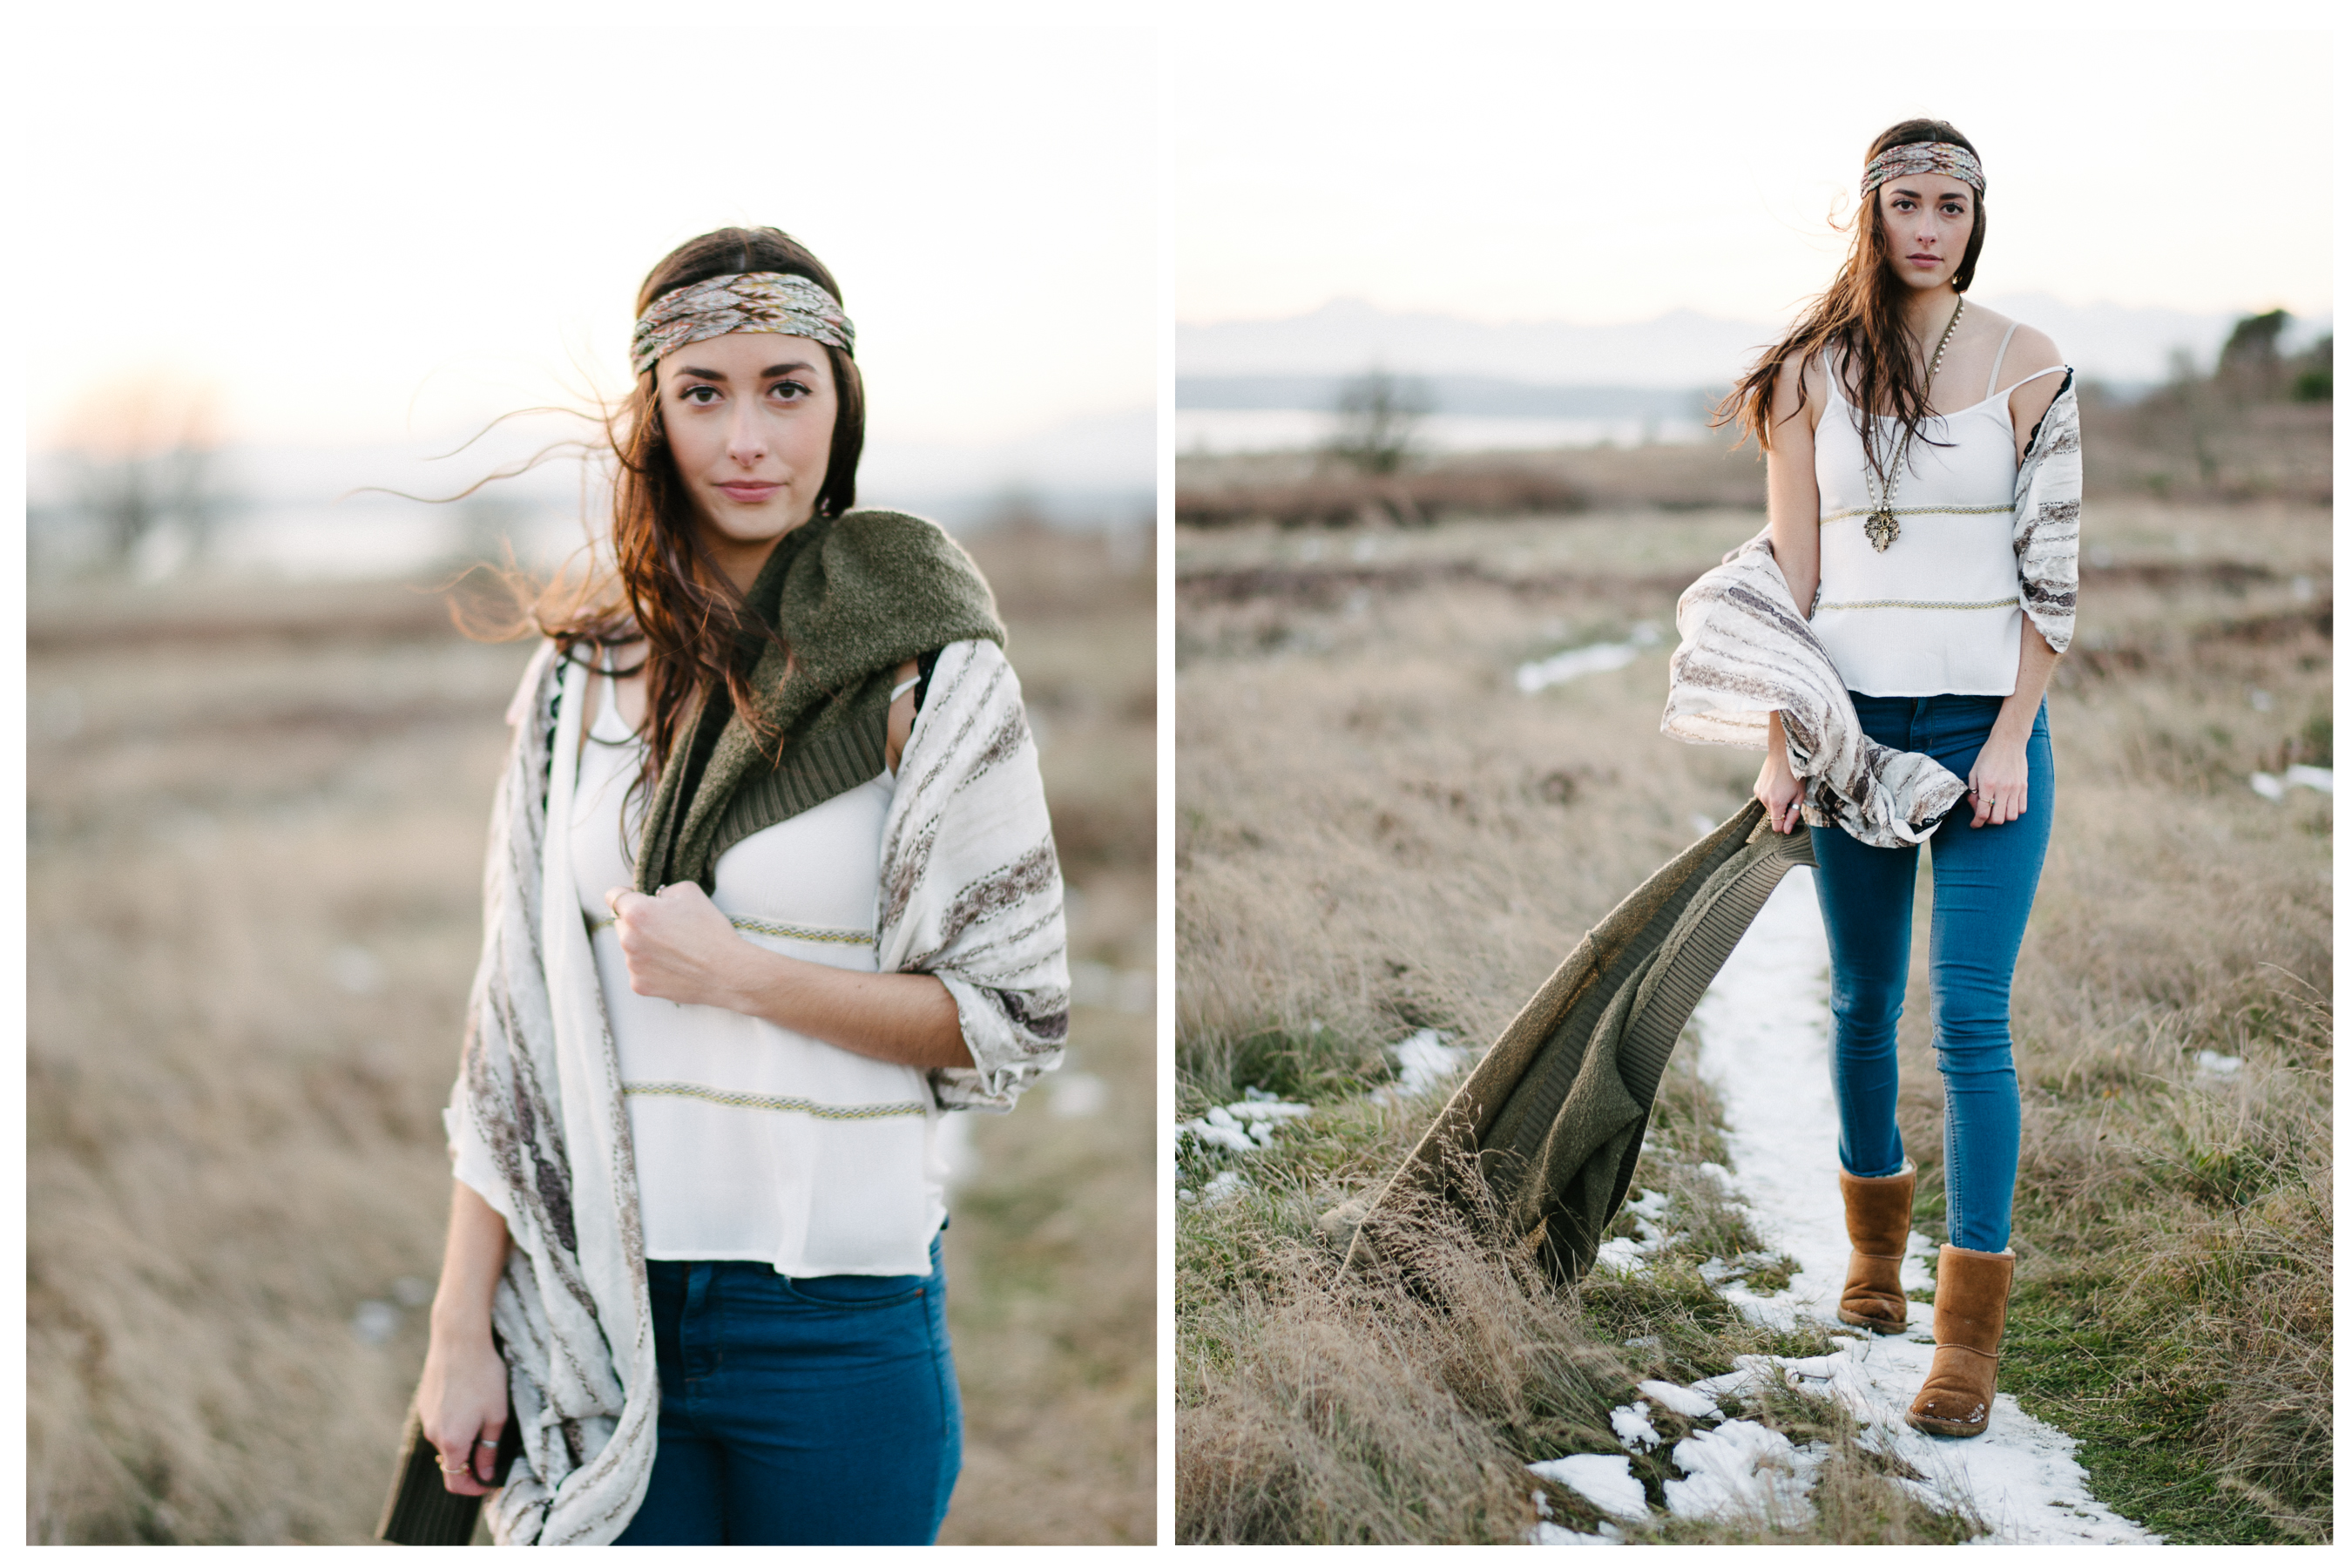 Bohemian style photography the image Bohemian style fashion blogs